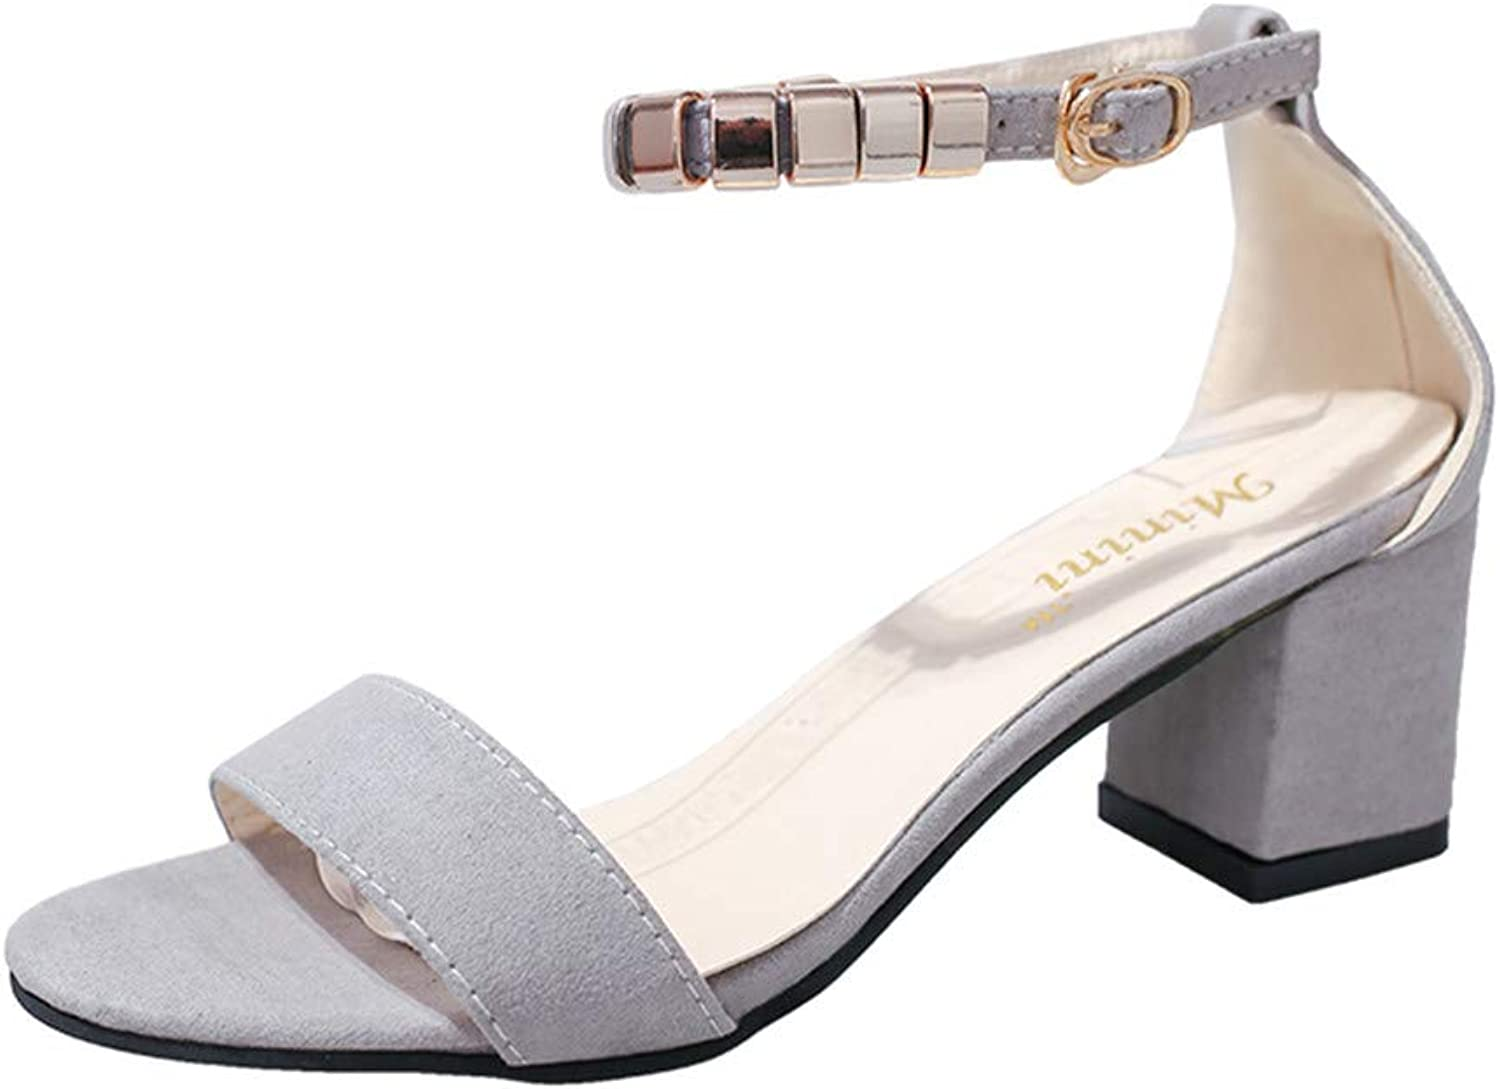 Niliyou Plus Size Summer Woman Sandals Metal Buckle Strap Summer shoes Open Toe Sandal